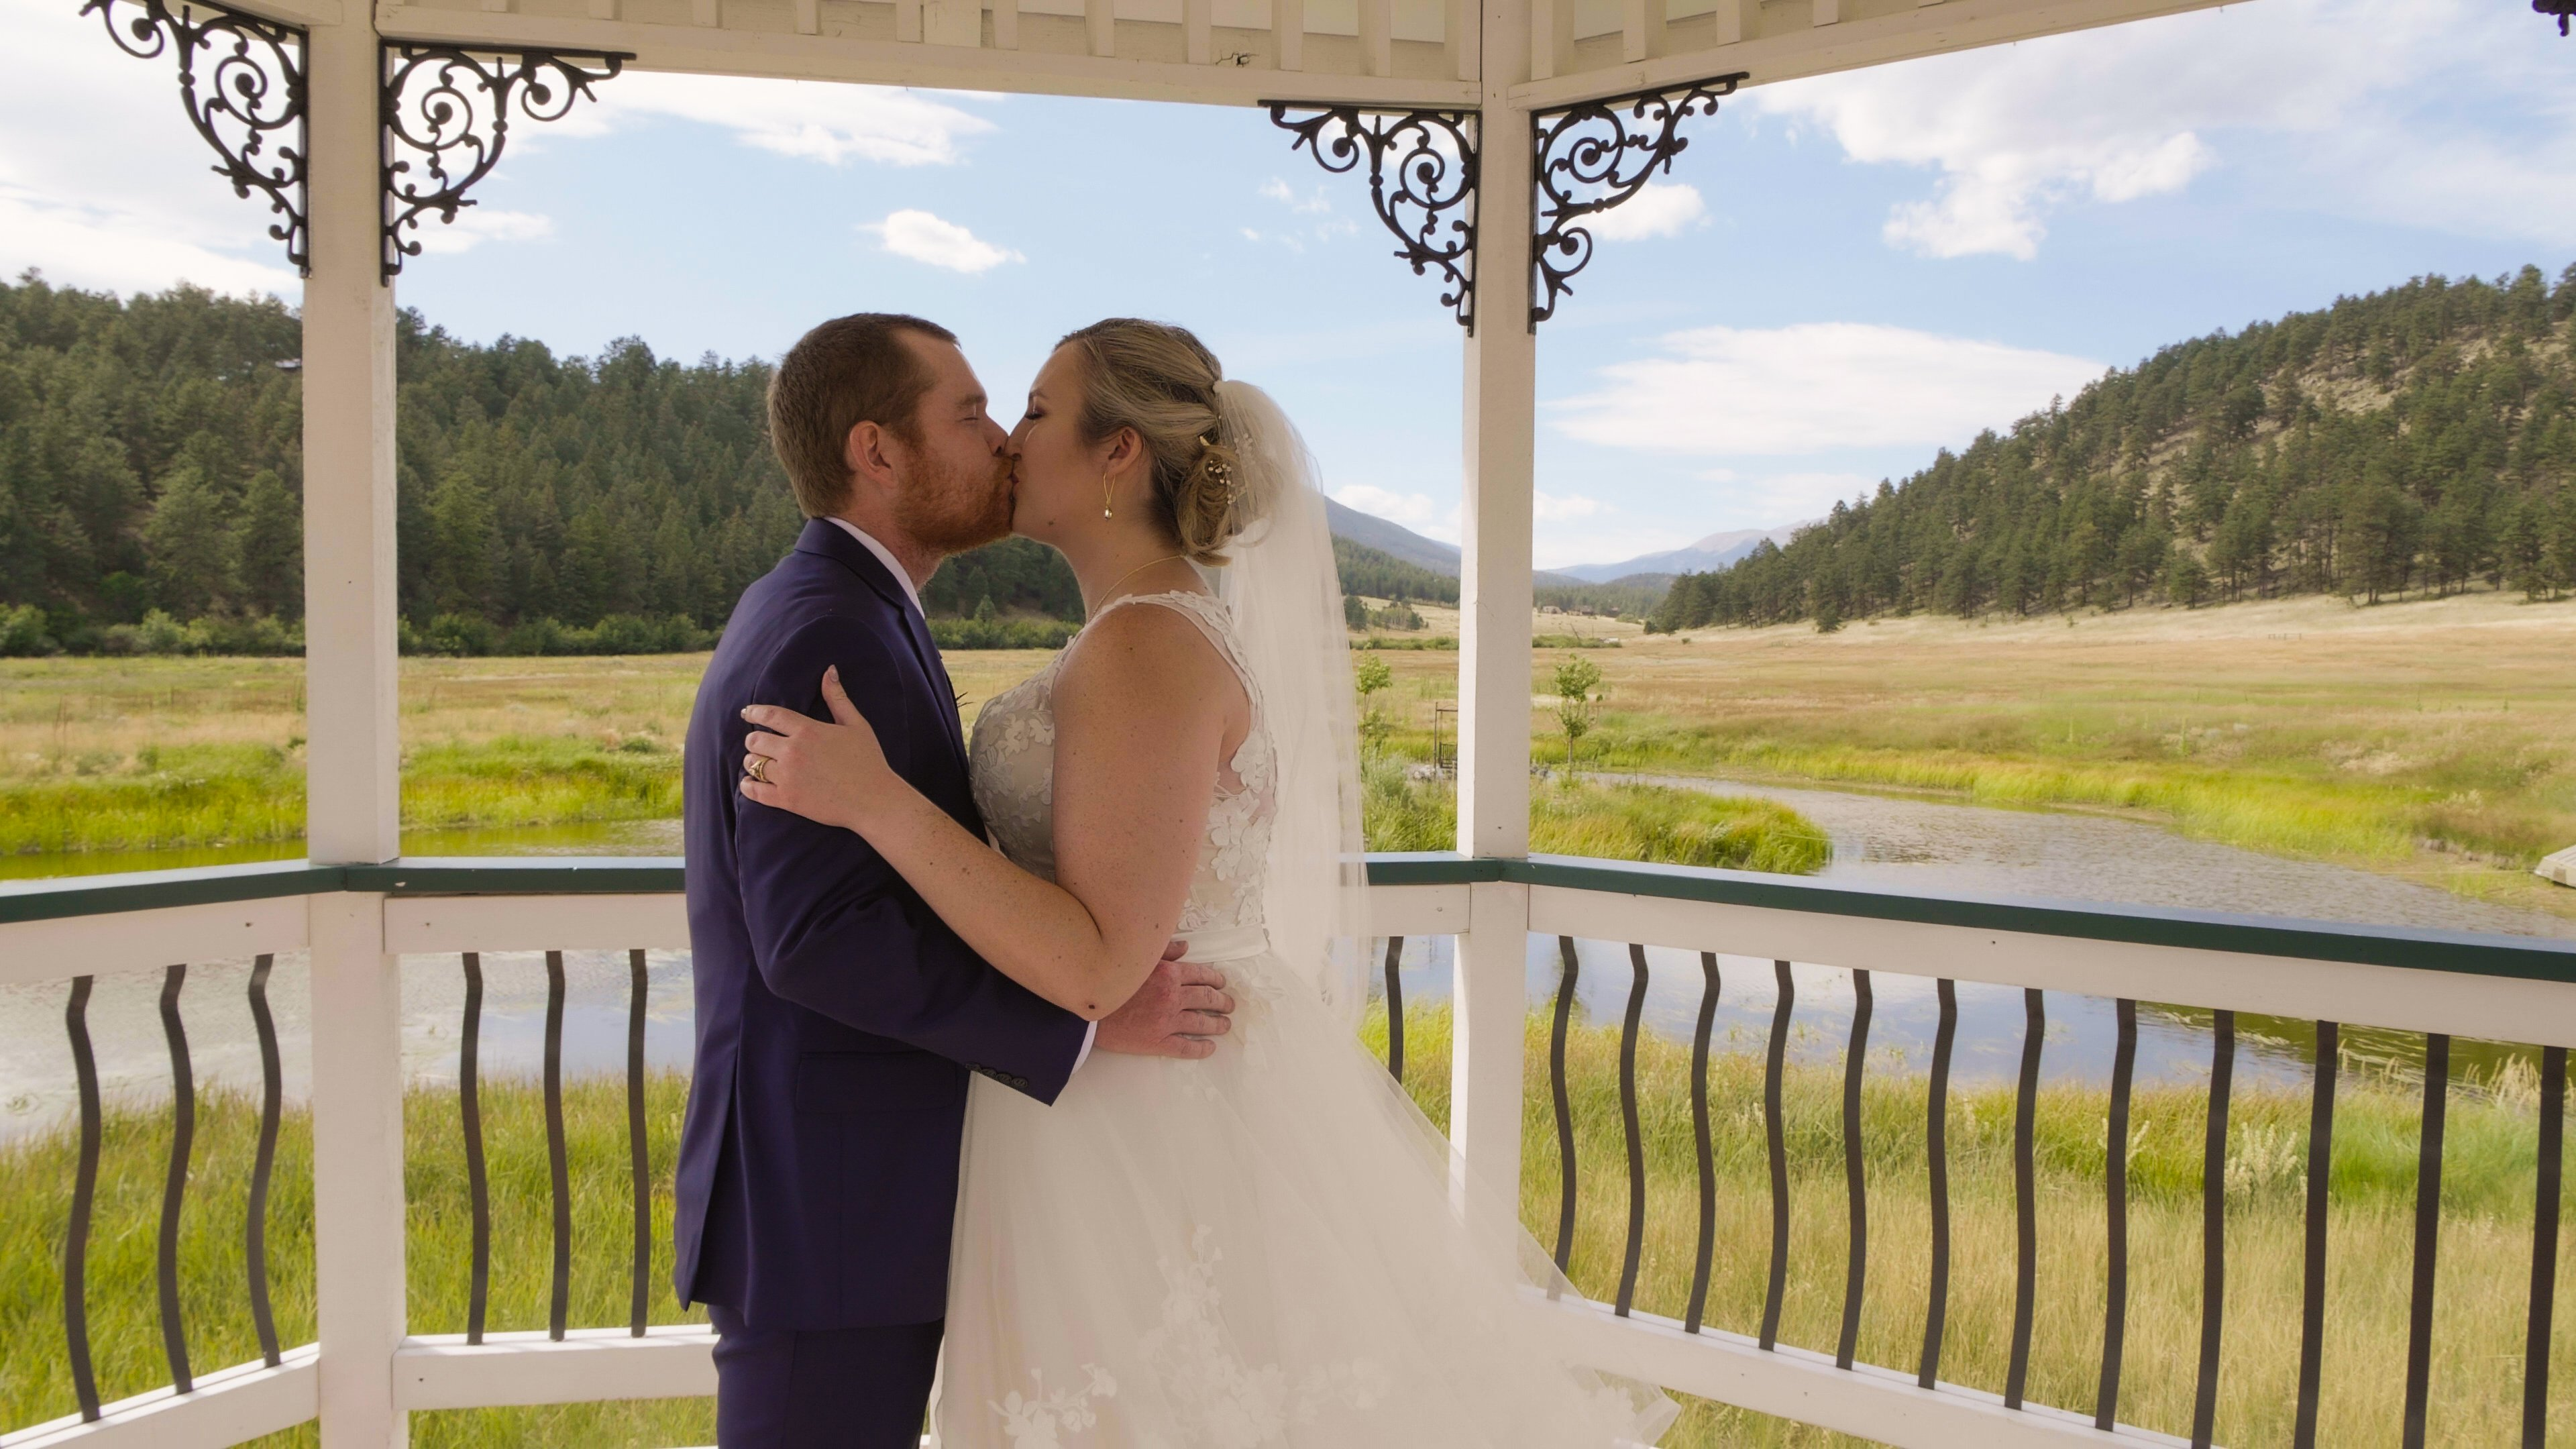 intimate love wedding videography